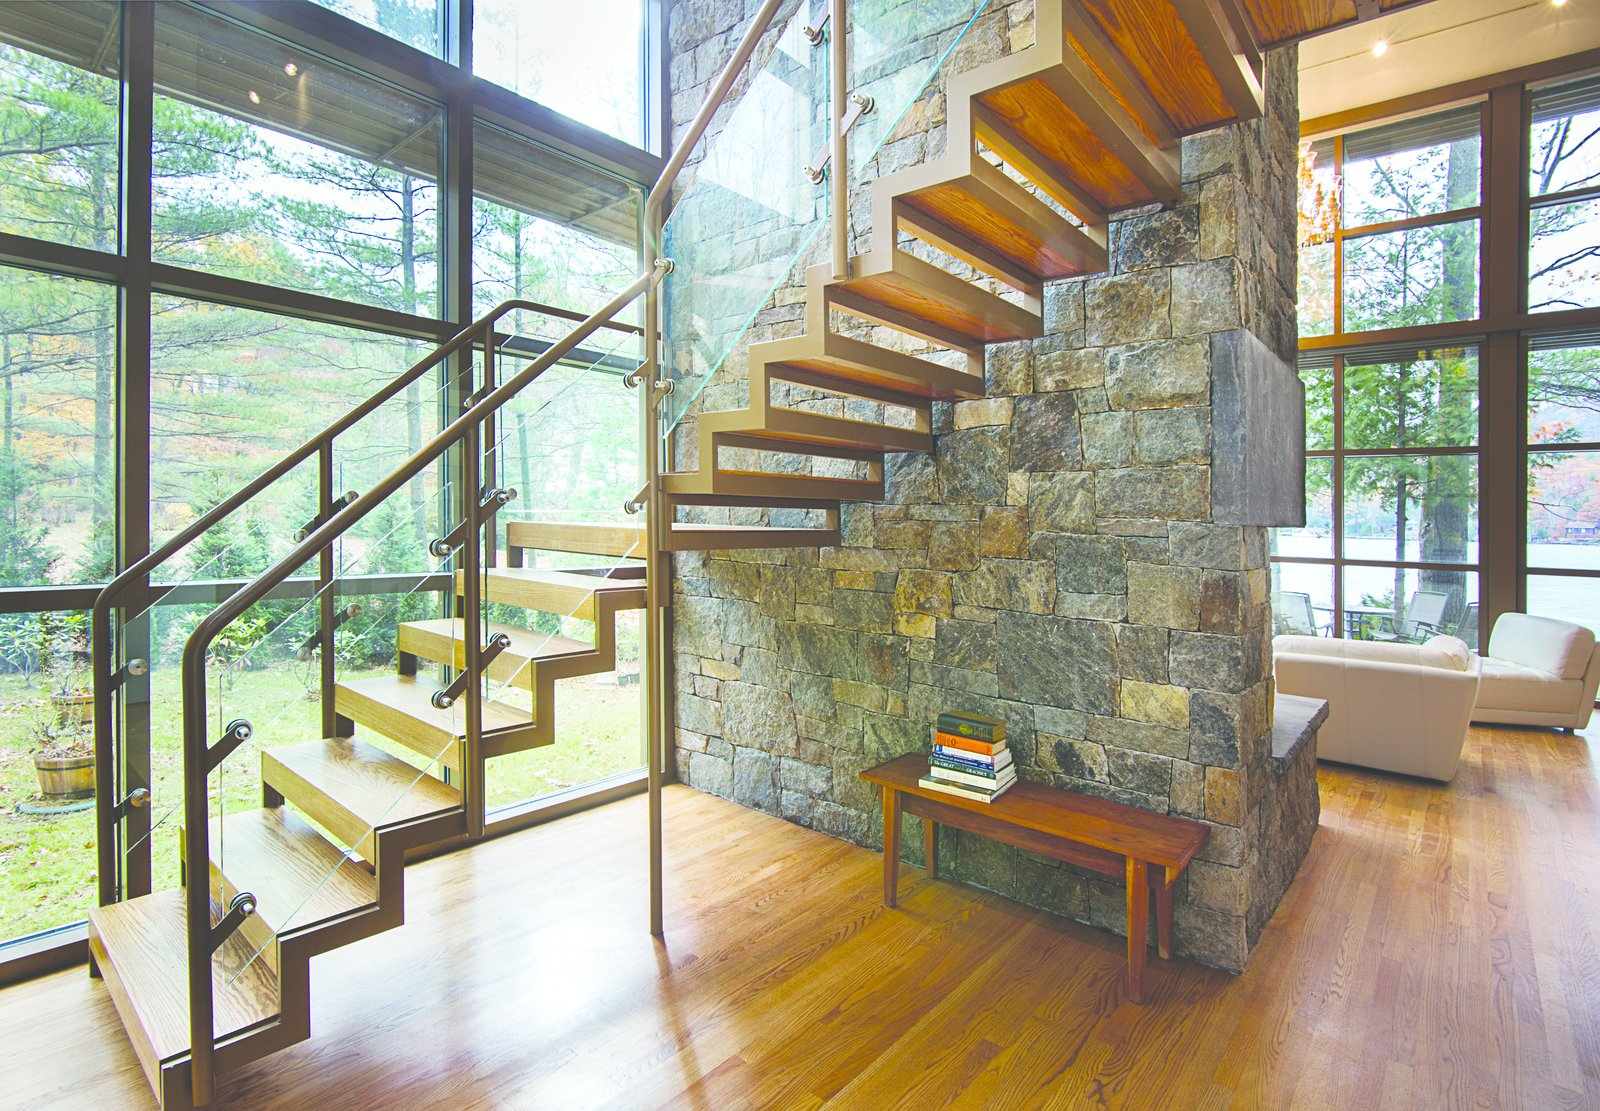 The sawtooth open staircase is anchored to granite chimney providing views of the stone through the stairway as well as, outside through the large glass wall behind the stair.  Modern Adirondack Retreat by Phinney Design Group